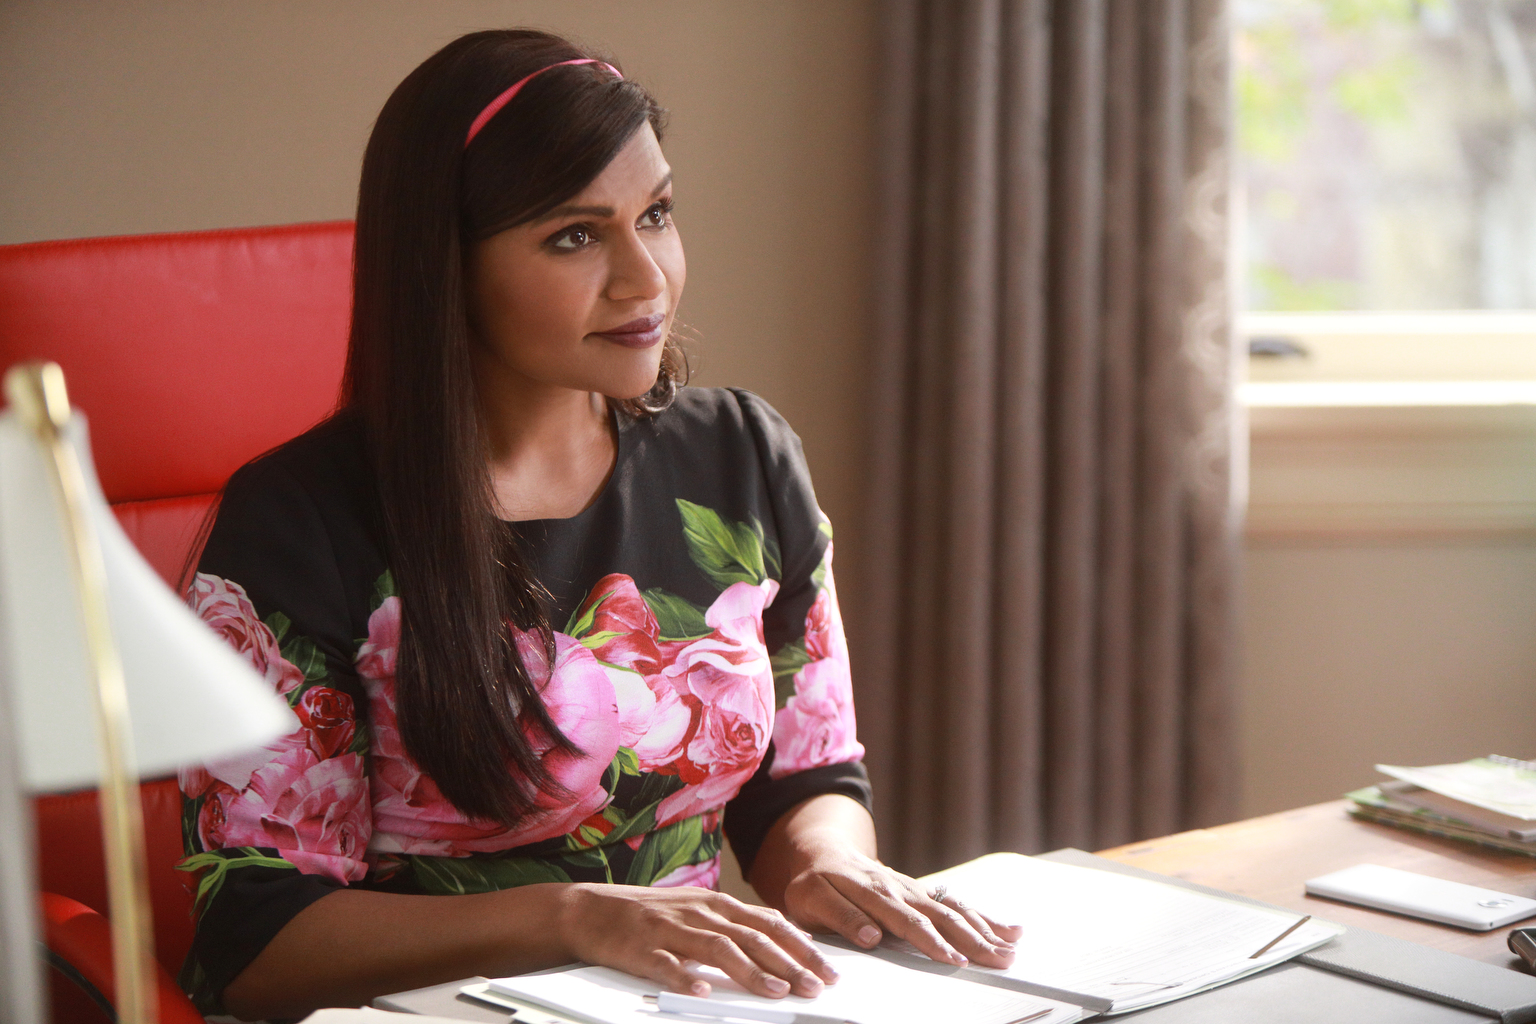 Mindy Kaling as Mindy Lahiri in season 6 of The Mindy Project.